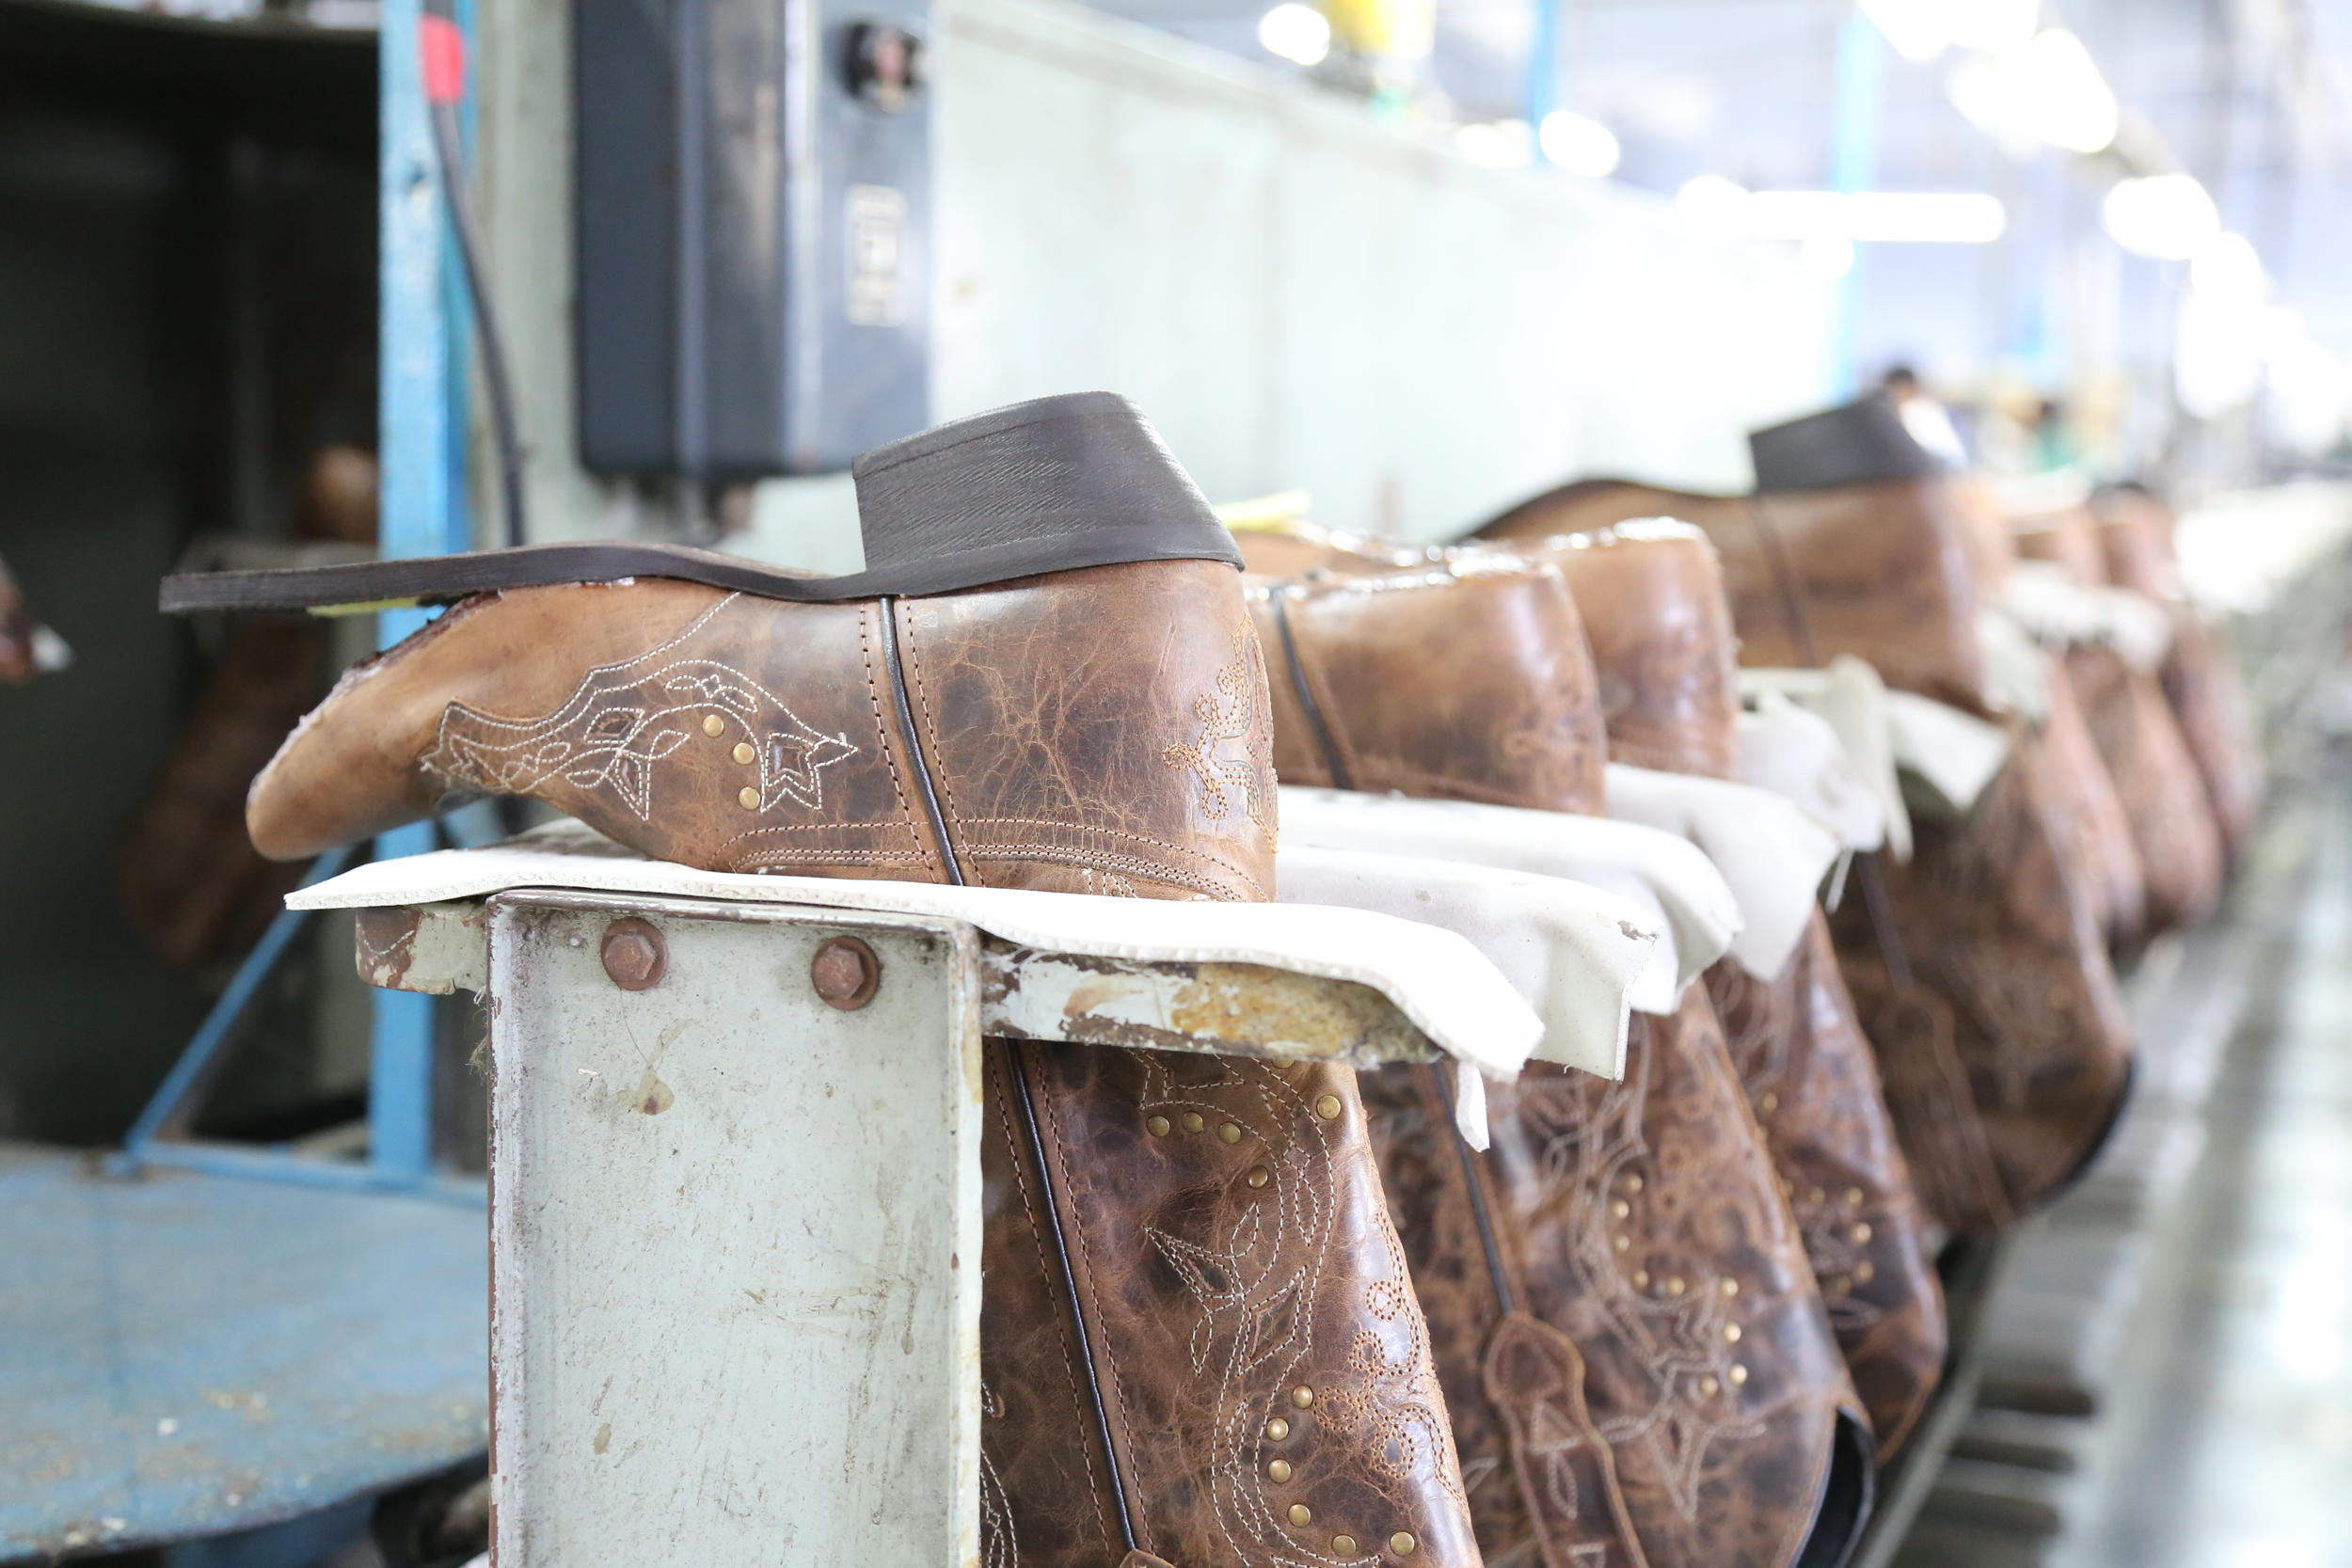 Cowboy boots on assembly line ready for sole pasting